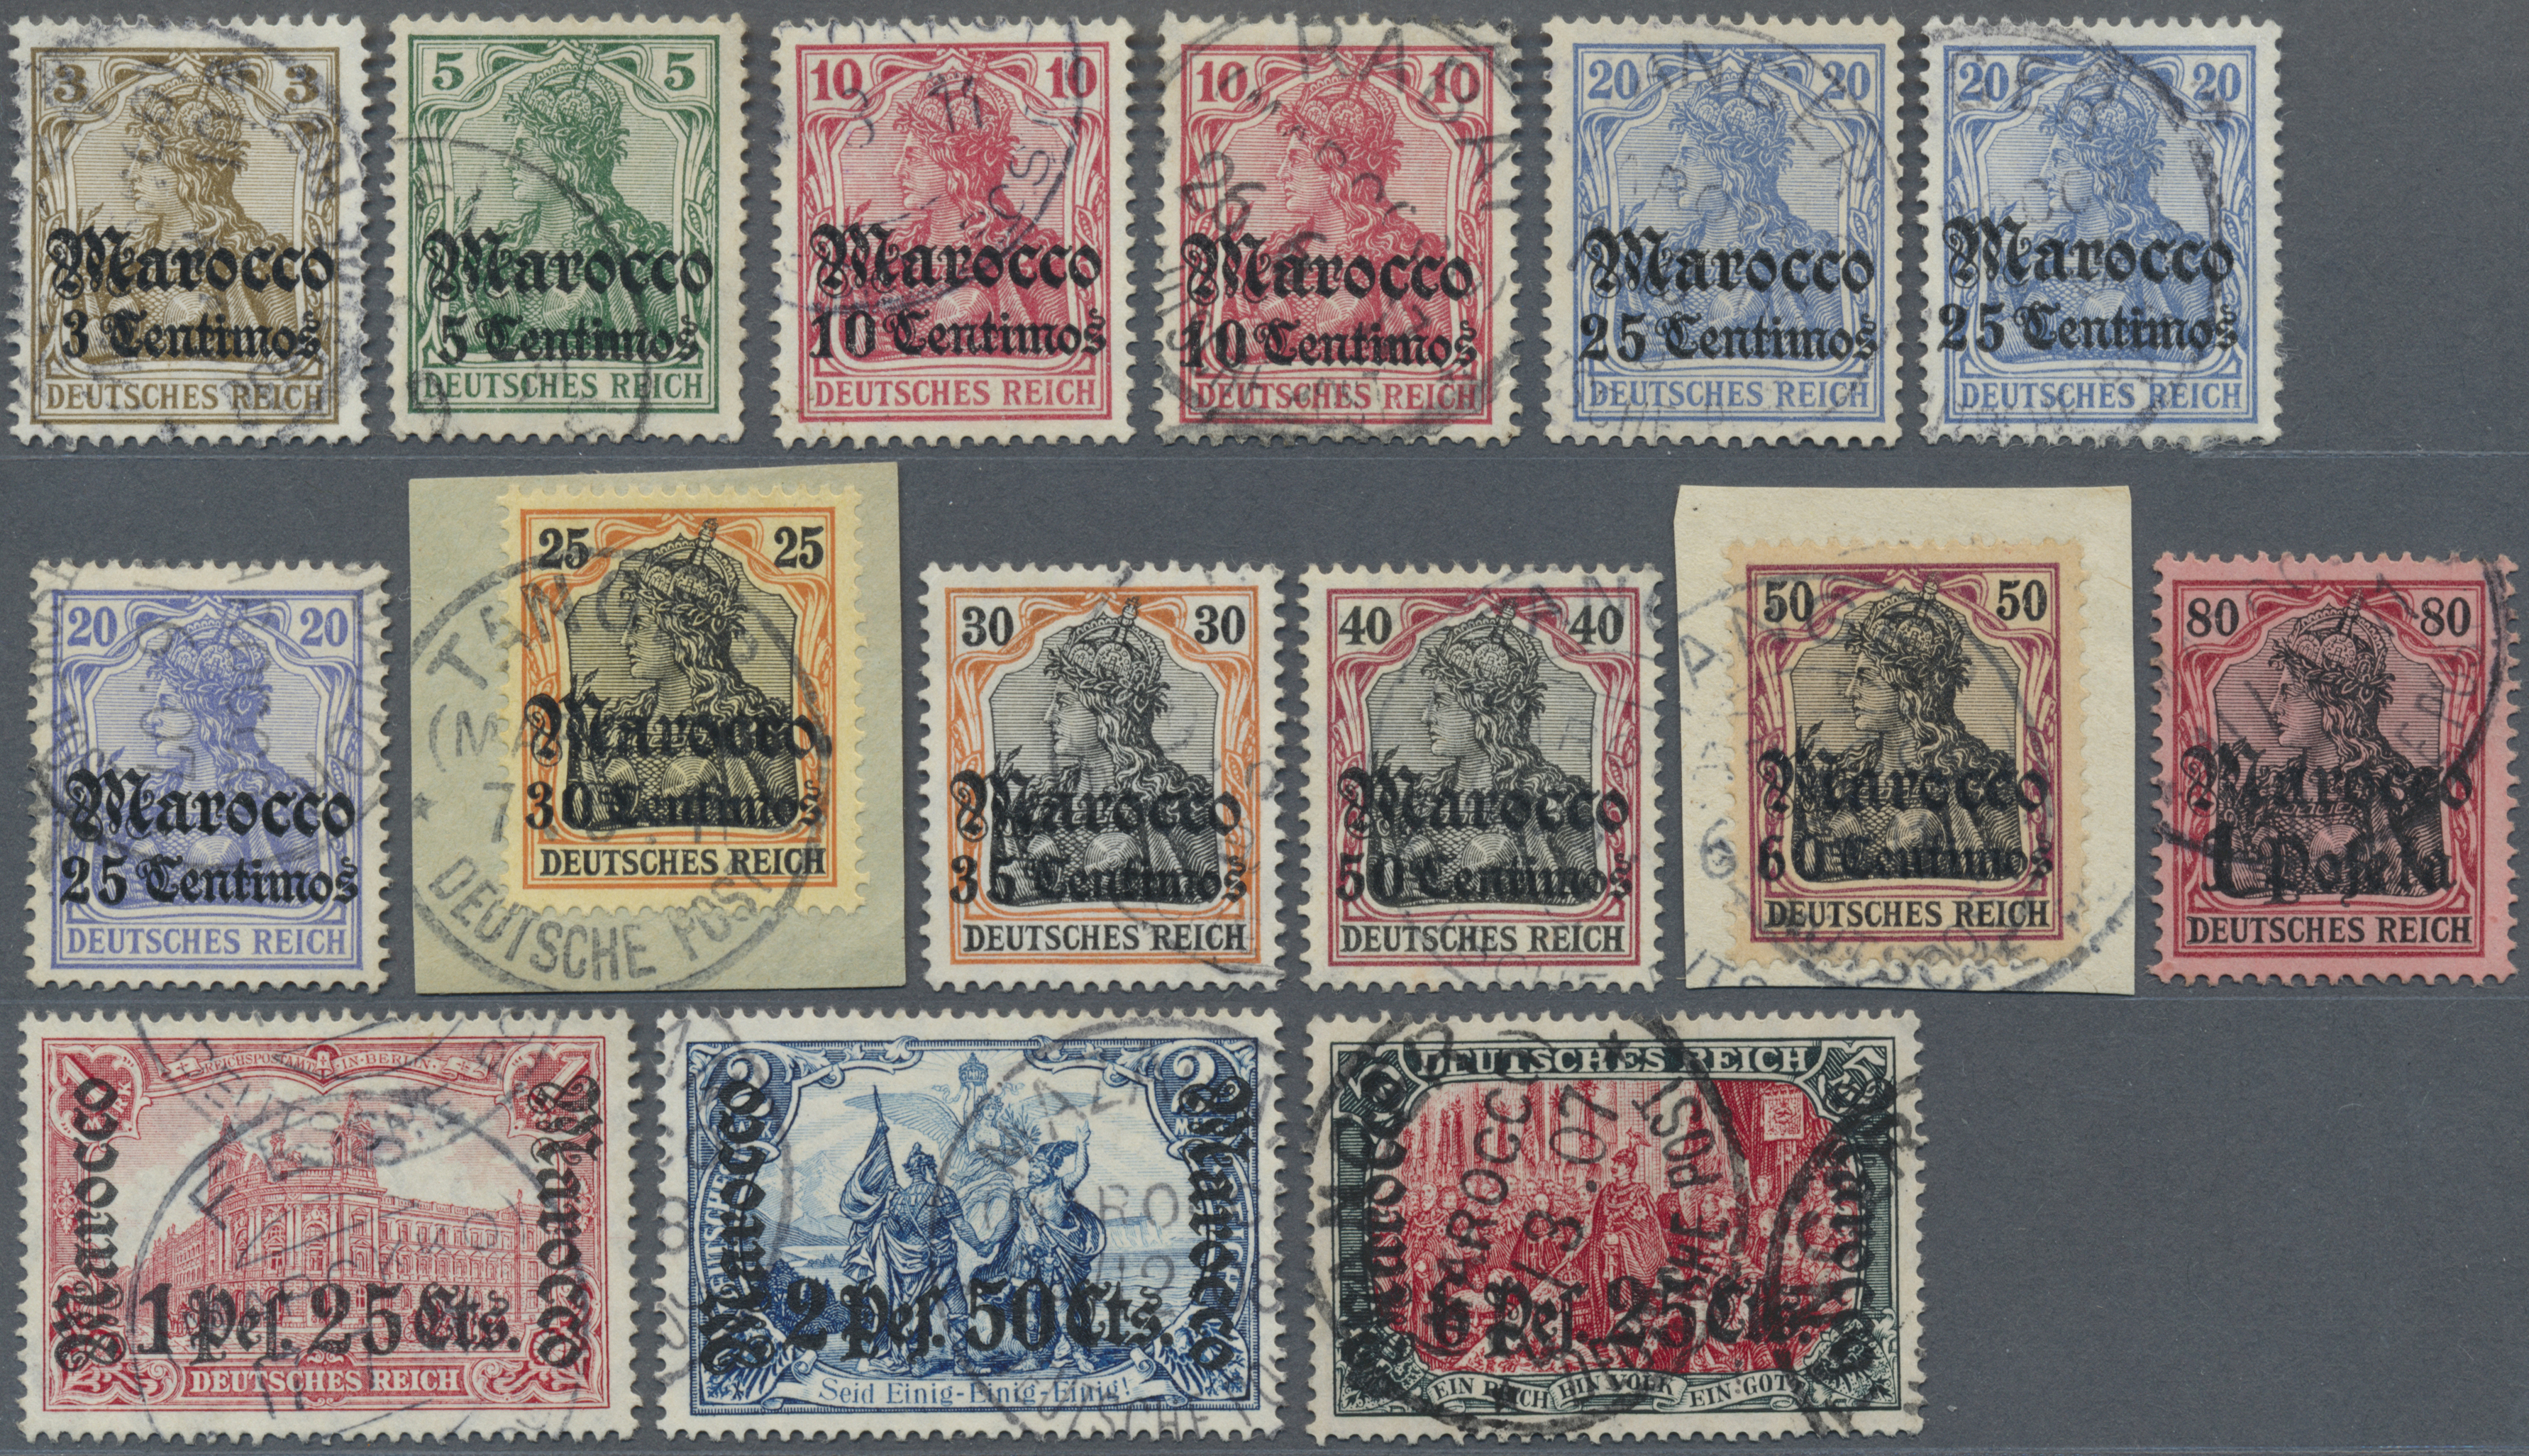 Lot 18478 - deutsche post in marokko  -  Auktionshaus Christoph Gärtner GmbH & Co. KG Auction #40 Germany, Picture Post Cards, Collections Overseas, Thematics